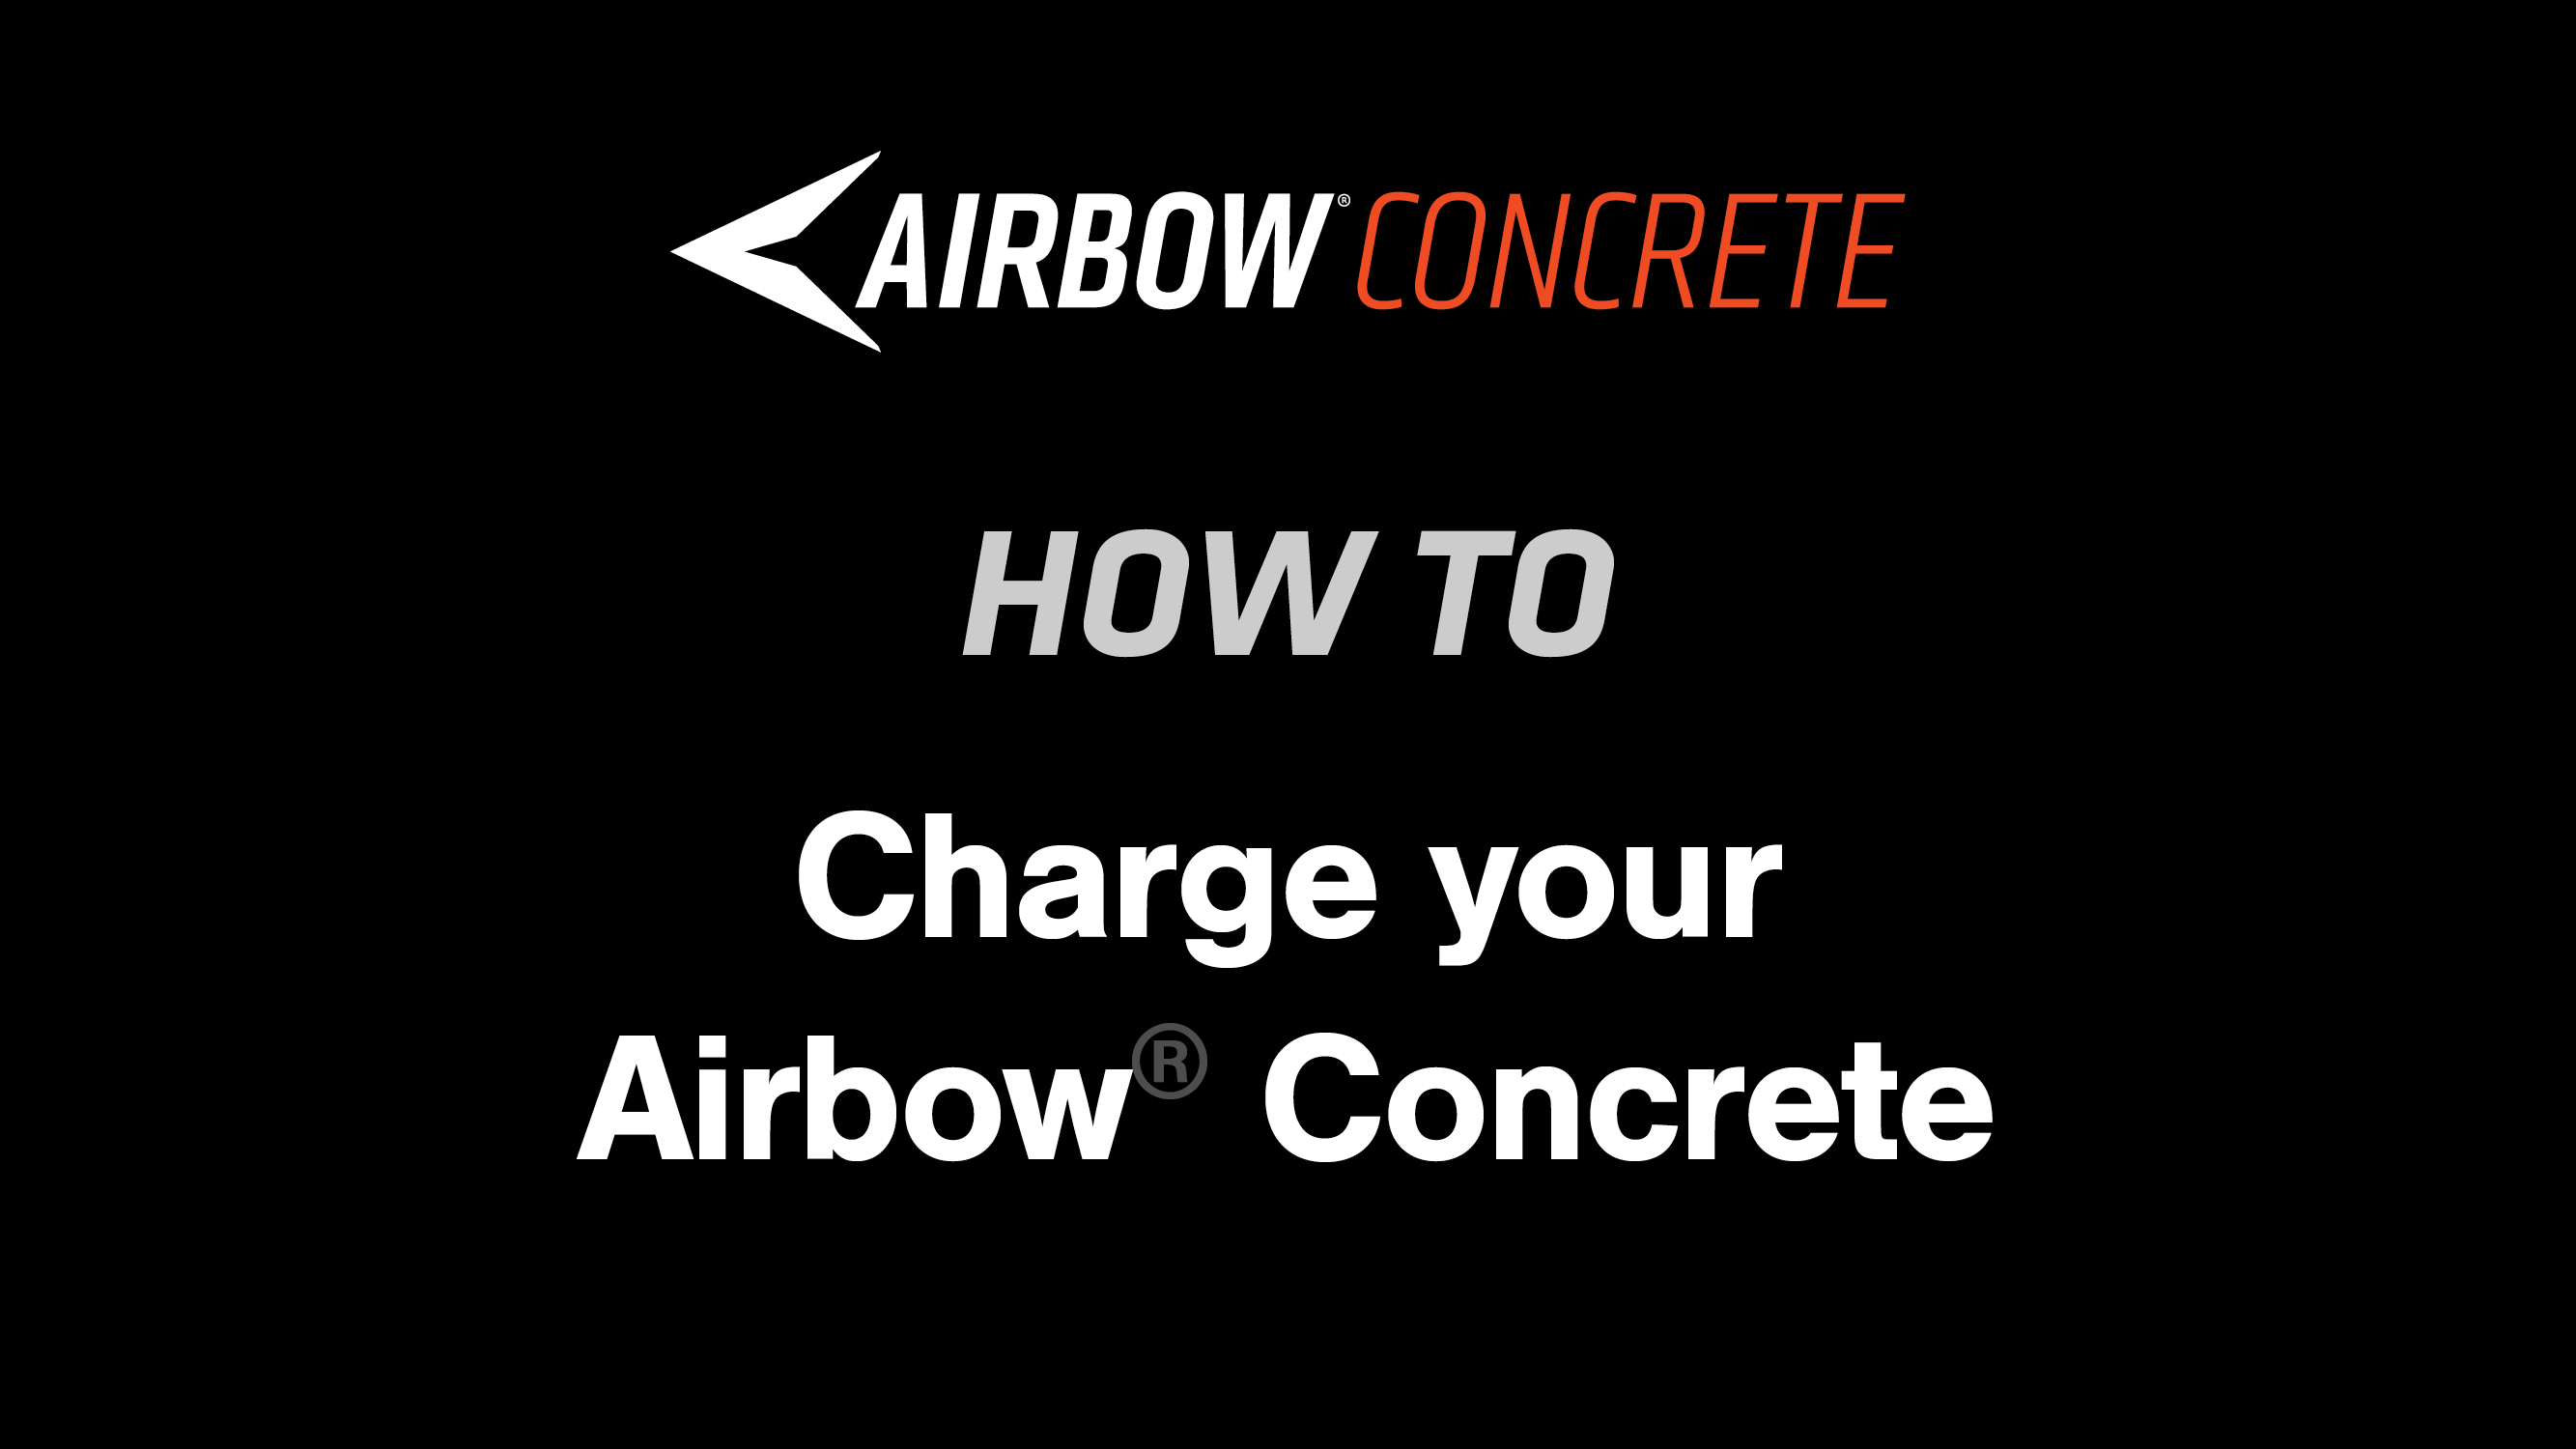 How to: Charge your Airbow Concrete